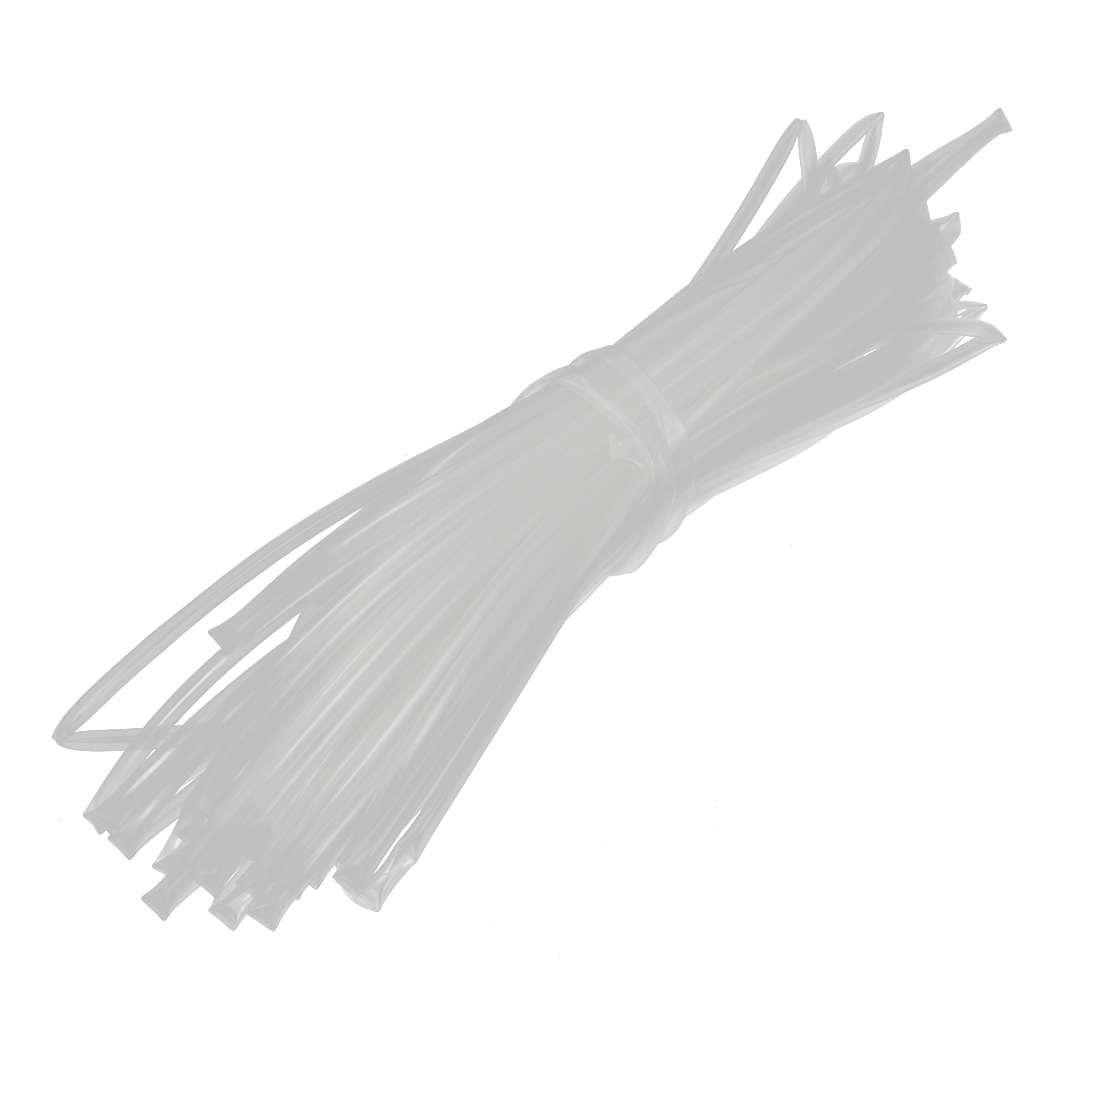 20M Long 4mm Inner Dia. Polyolefin Heat Shrinkable Tube Wire Wrap Sleeve Clear